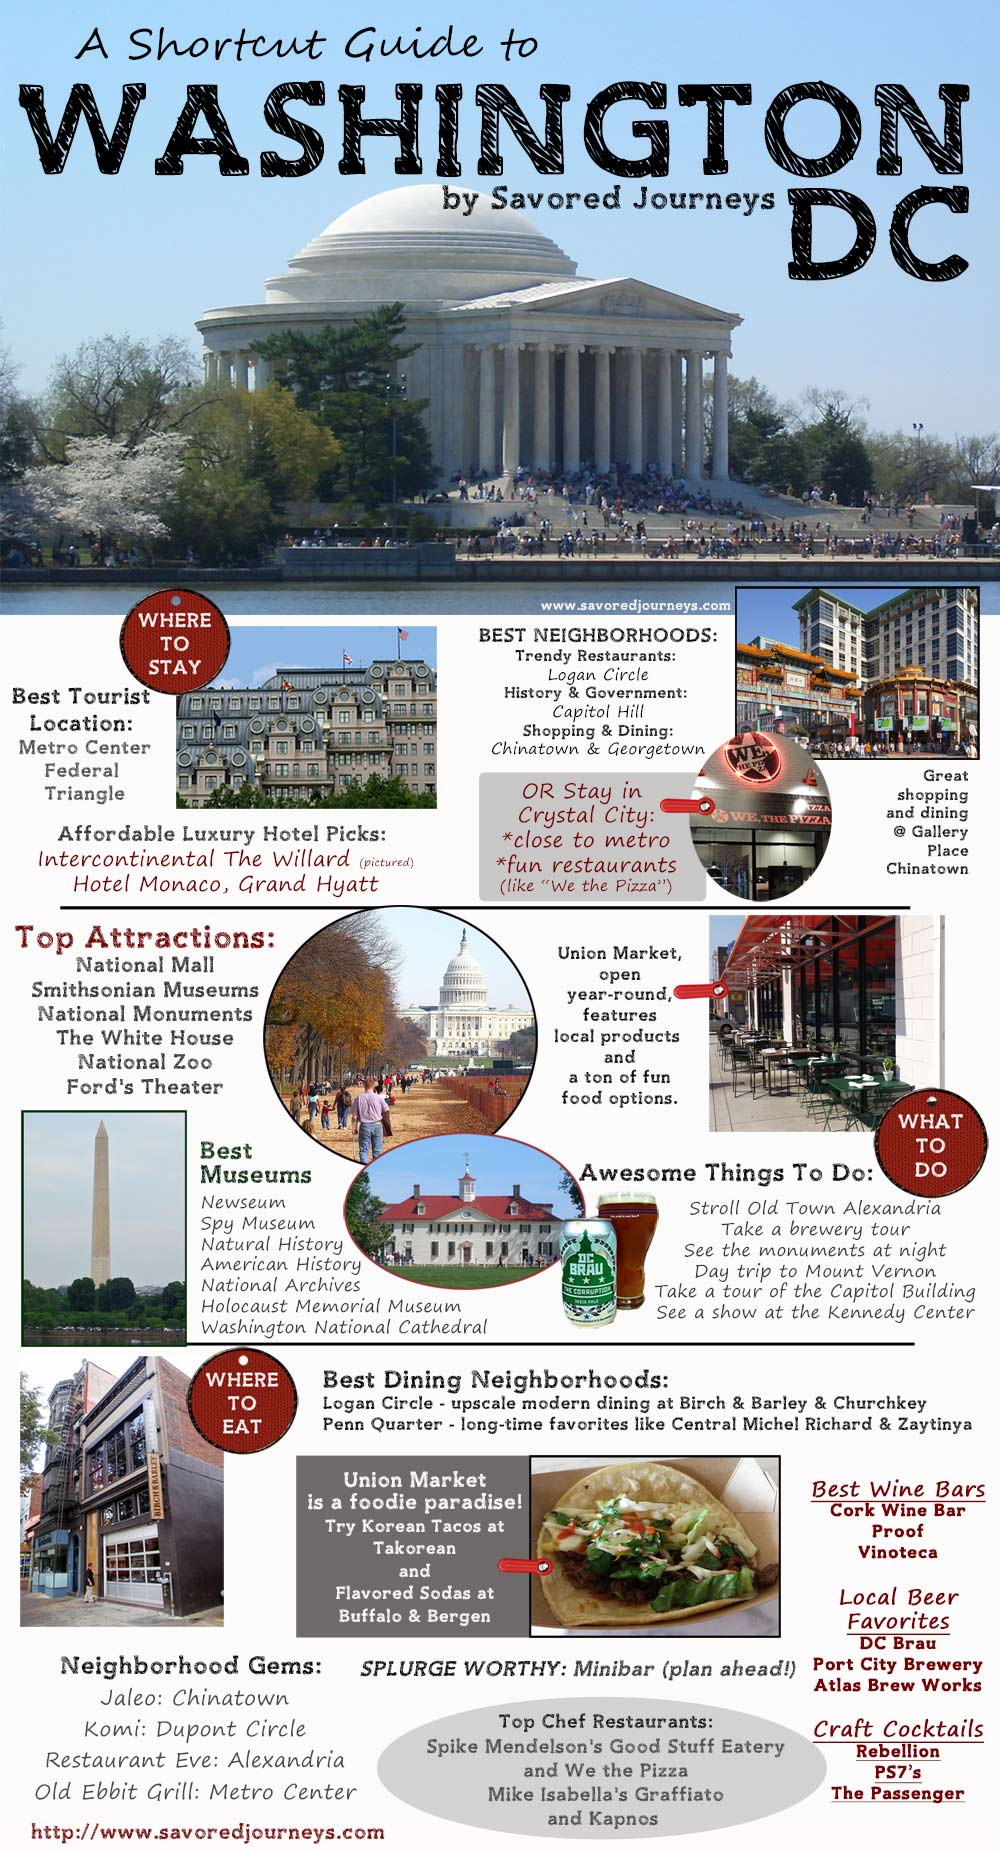 Travel Guide to Wasington DC